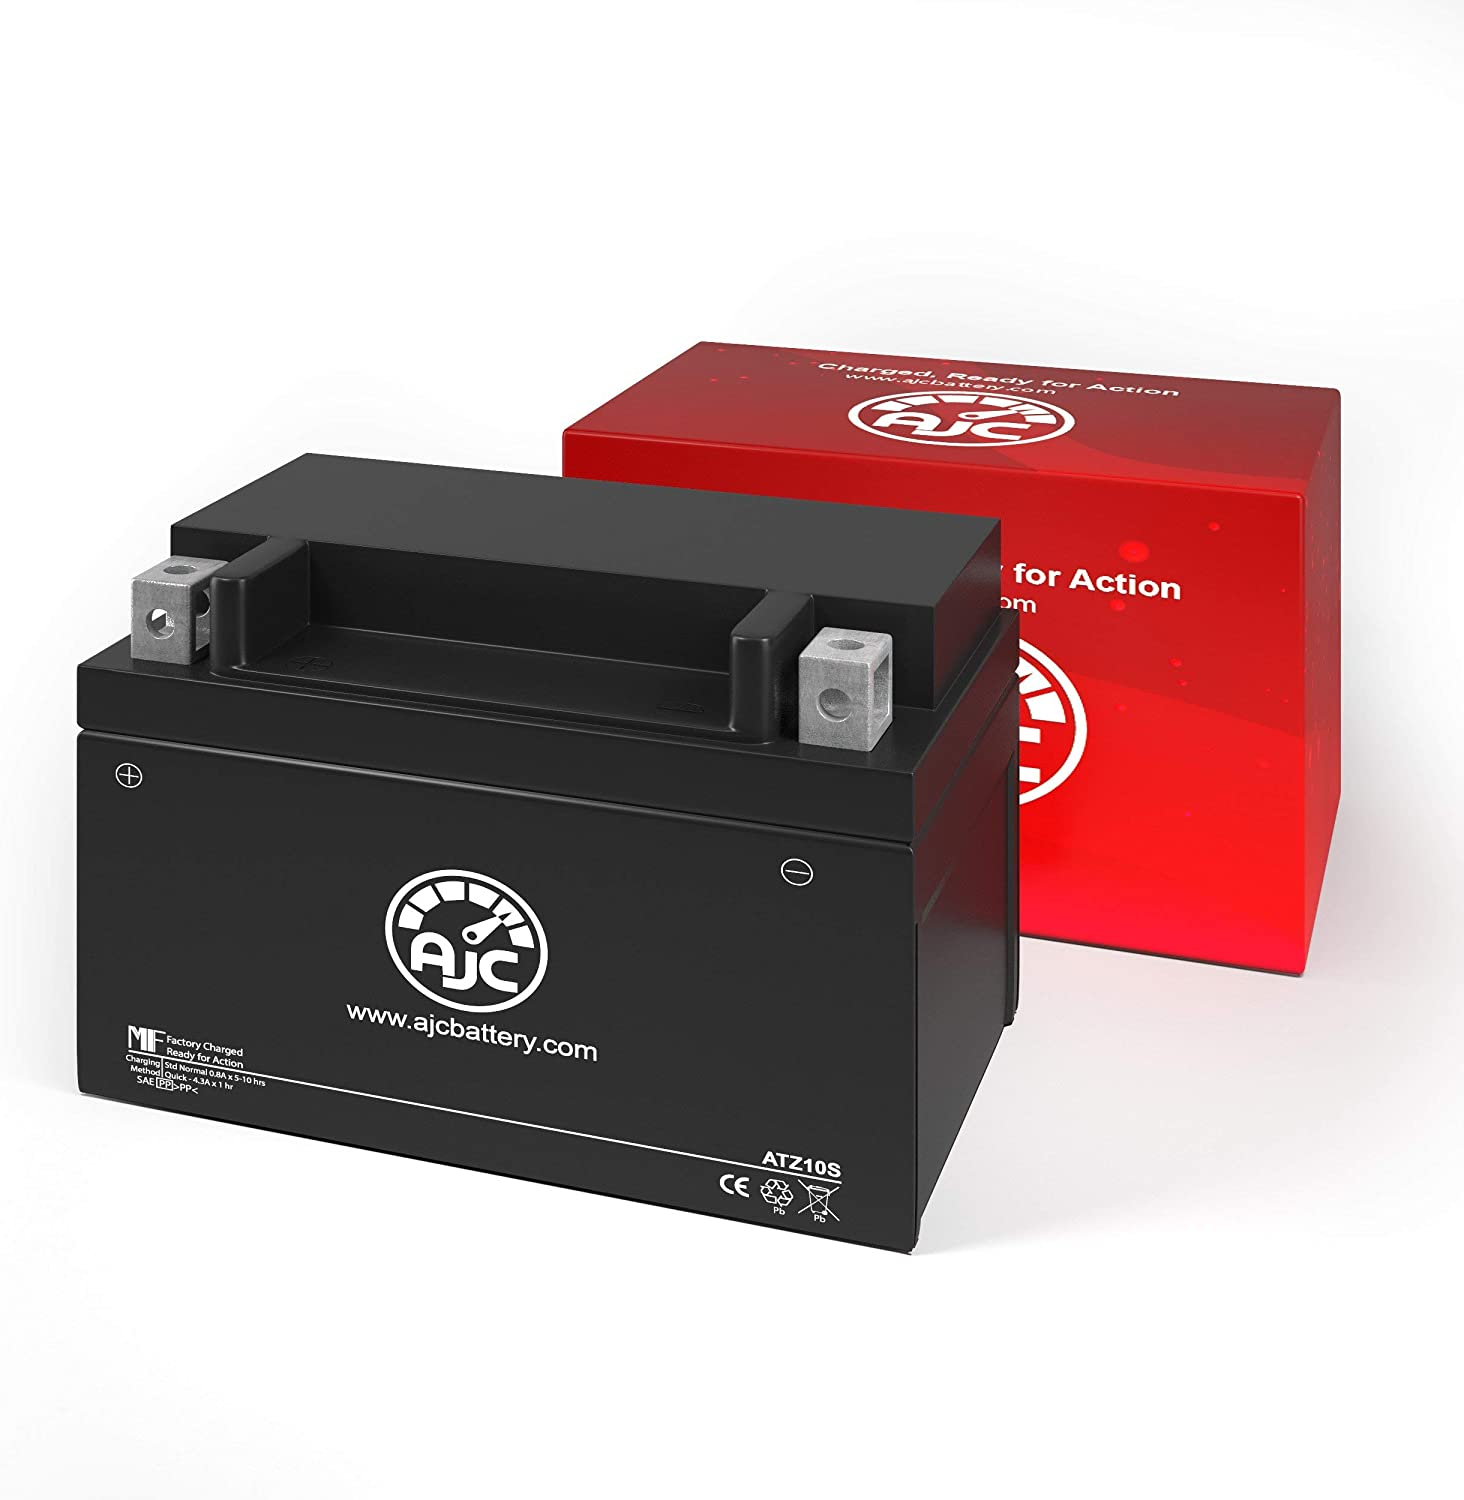 Scorpion YTZ10S Powersports Replacement Battery This is an AJC Brand Replacement